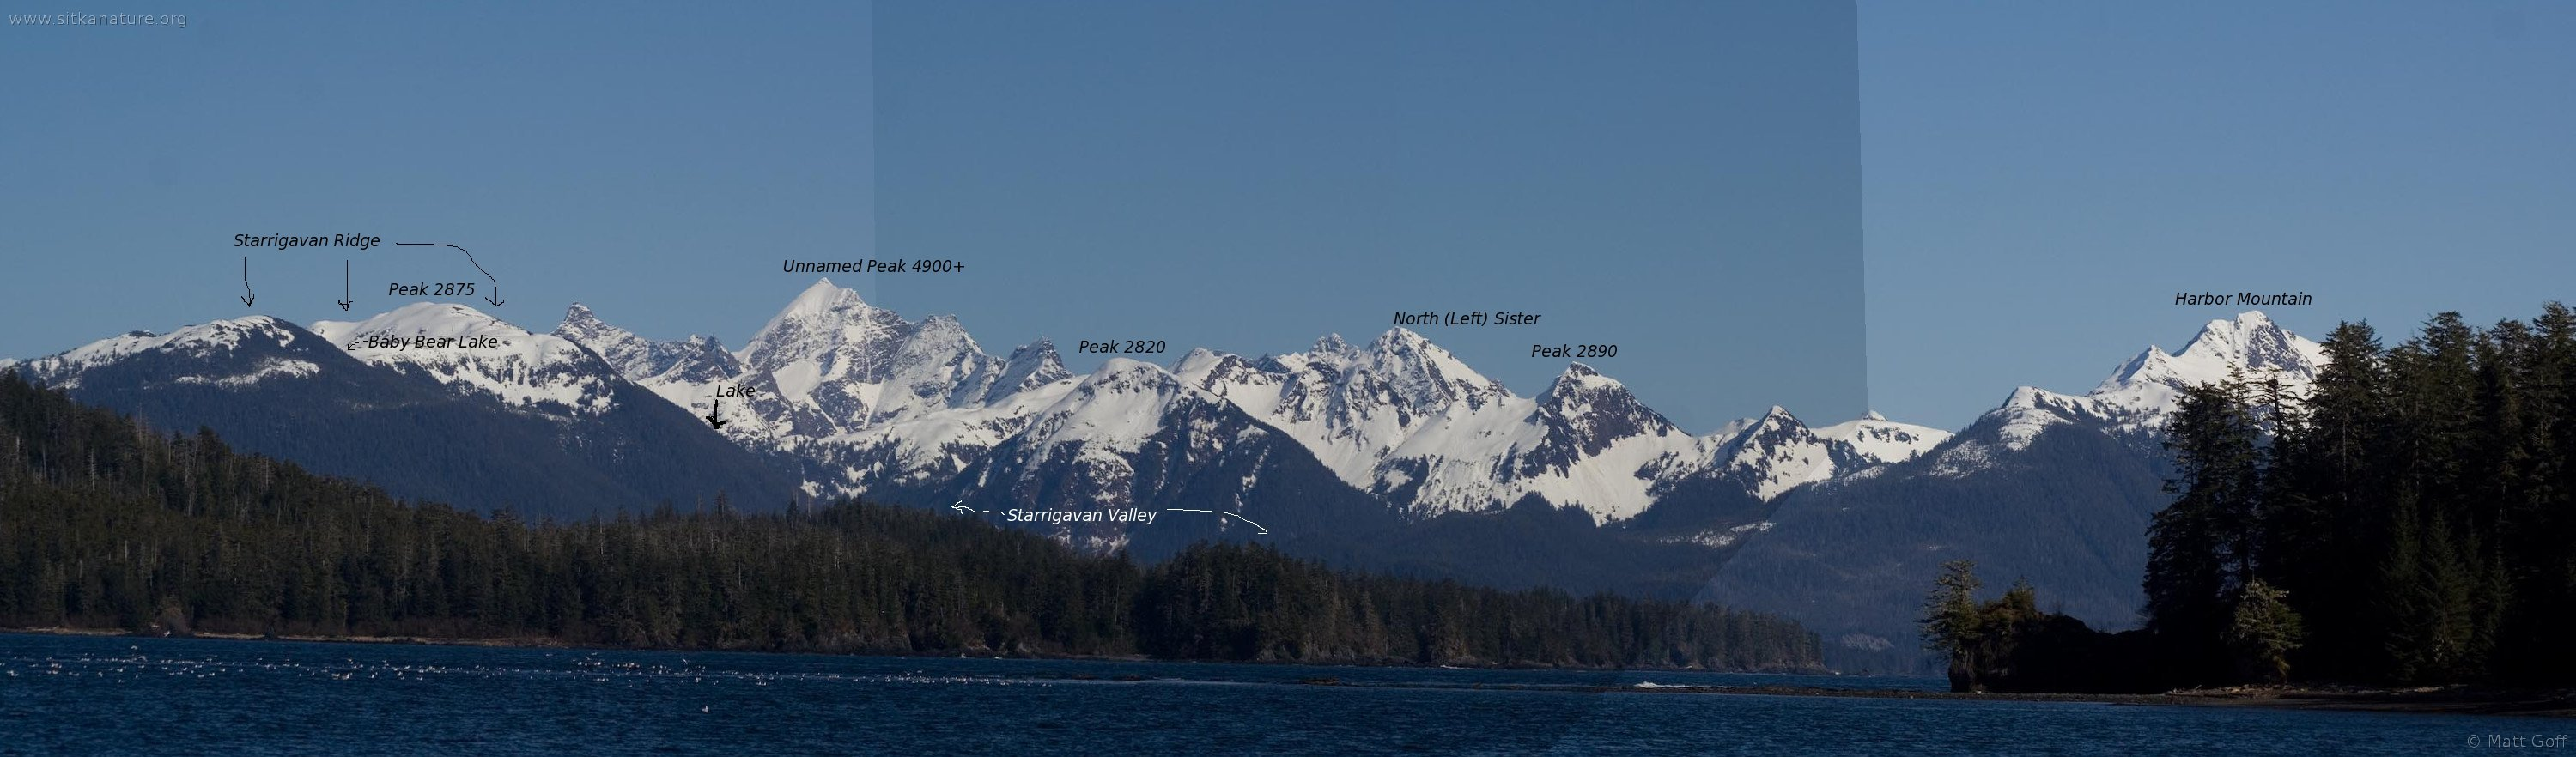 Baranof Island Mountains